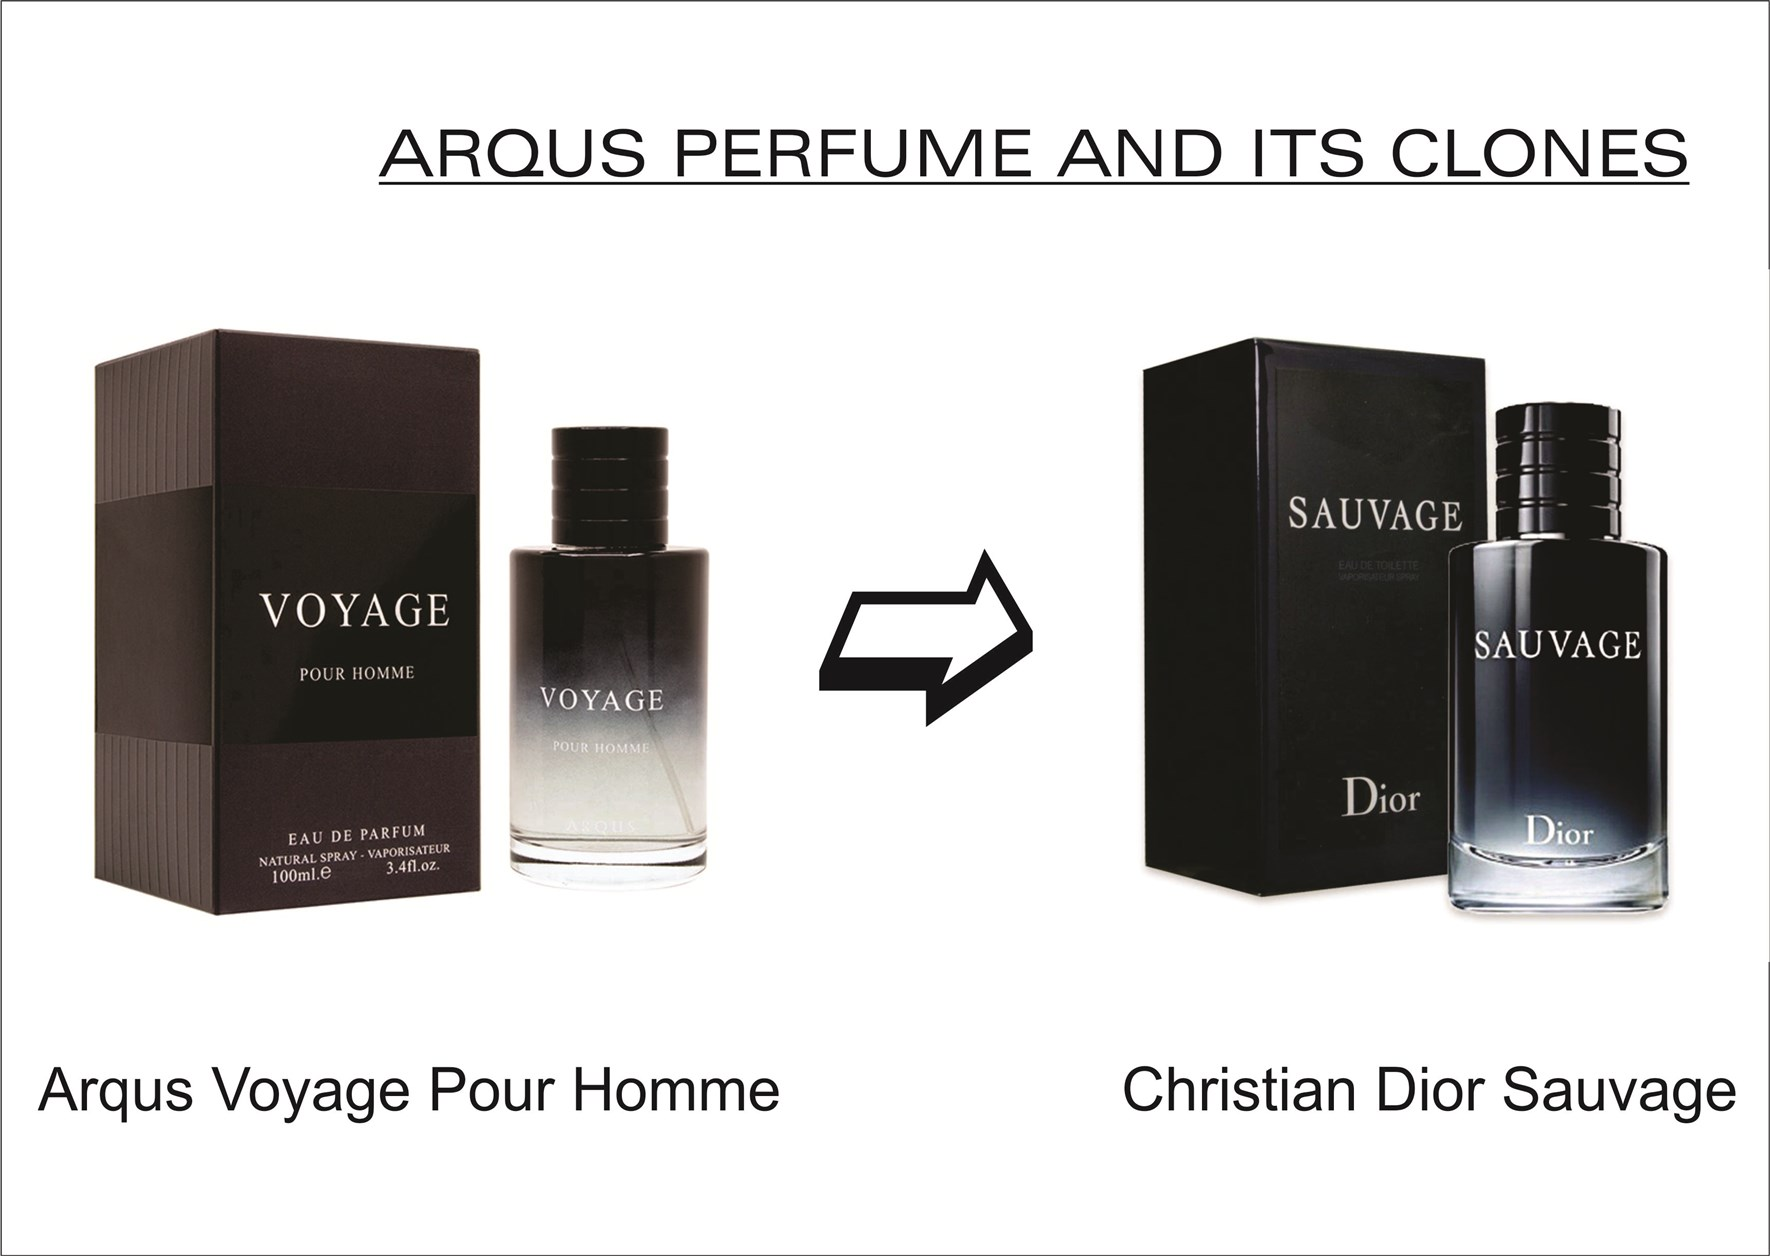 arqus-voyage-pour-homme-for-men-100-ml-edp-by-lattafa-perfumes-christian-dior-sauvage-perfume-for-man-100-ml-edt